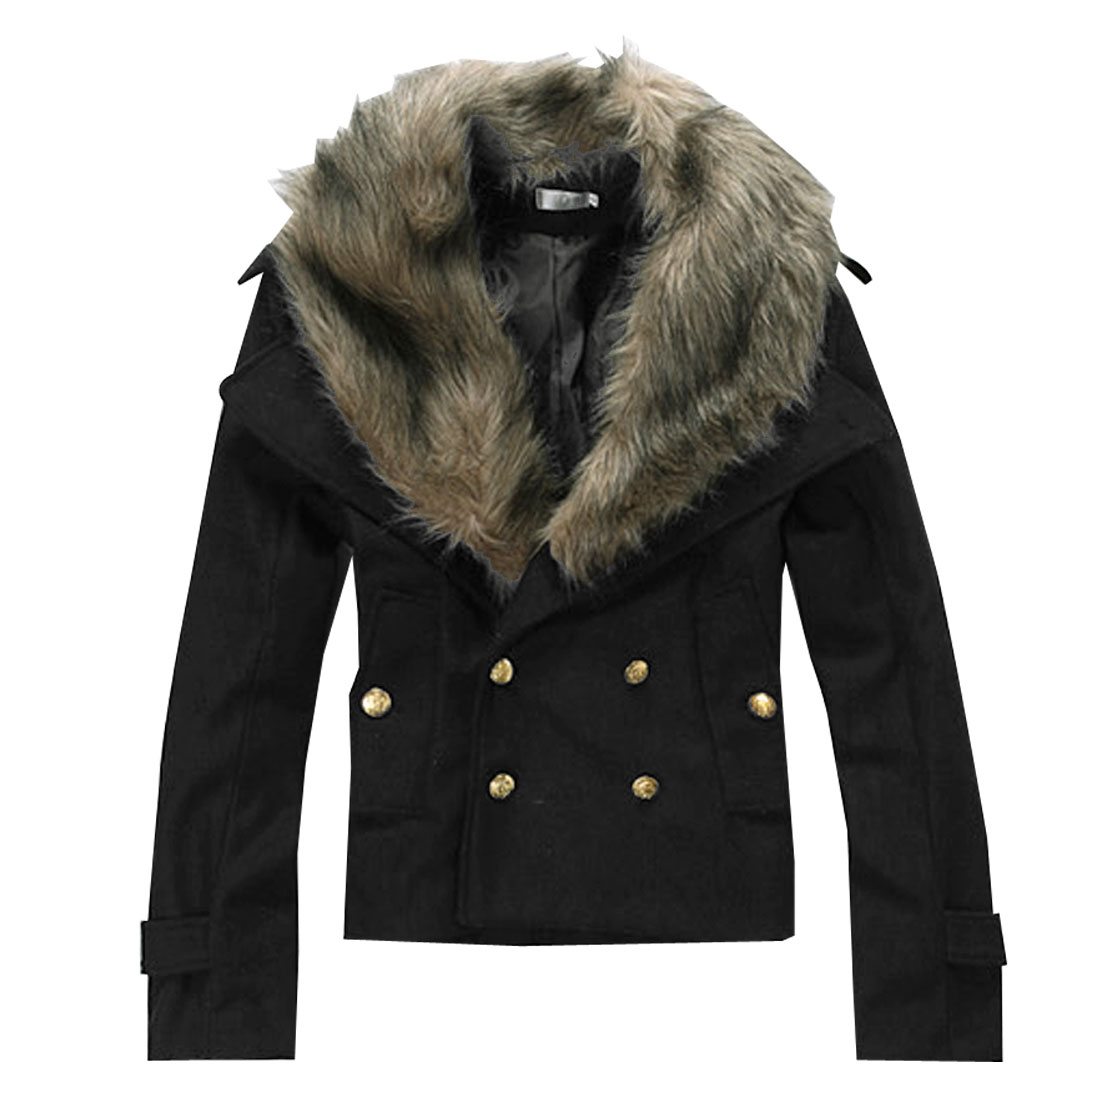 Mens Black Fashion Faux Fur Collar Button Closure Slant Pockets Winter Coat S